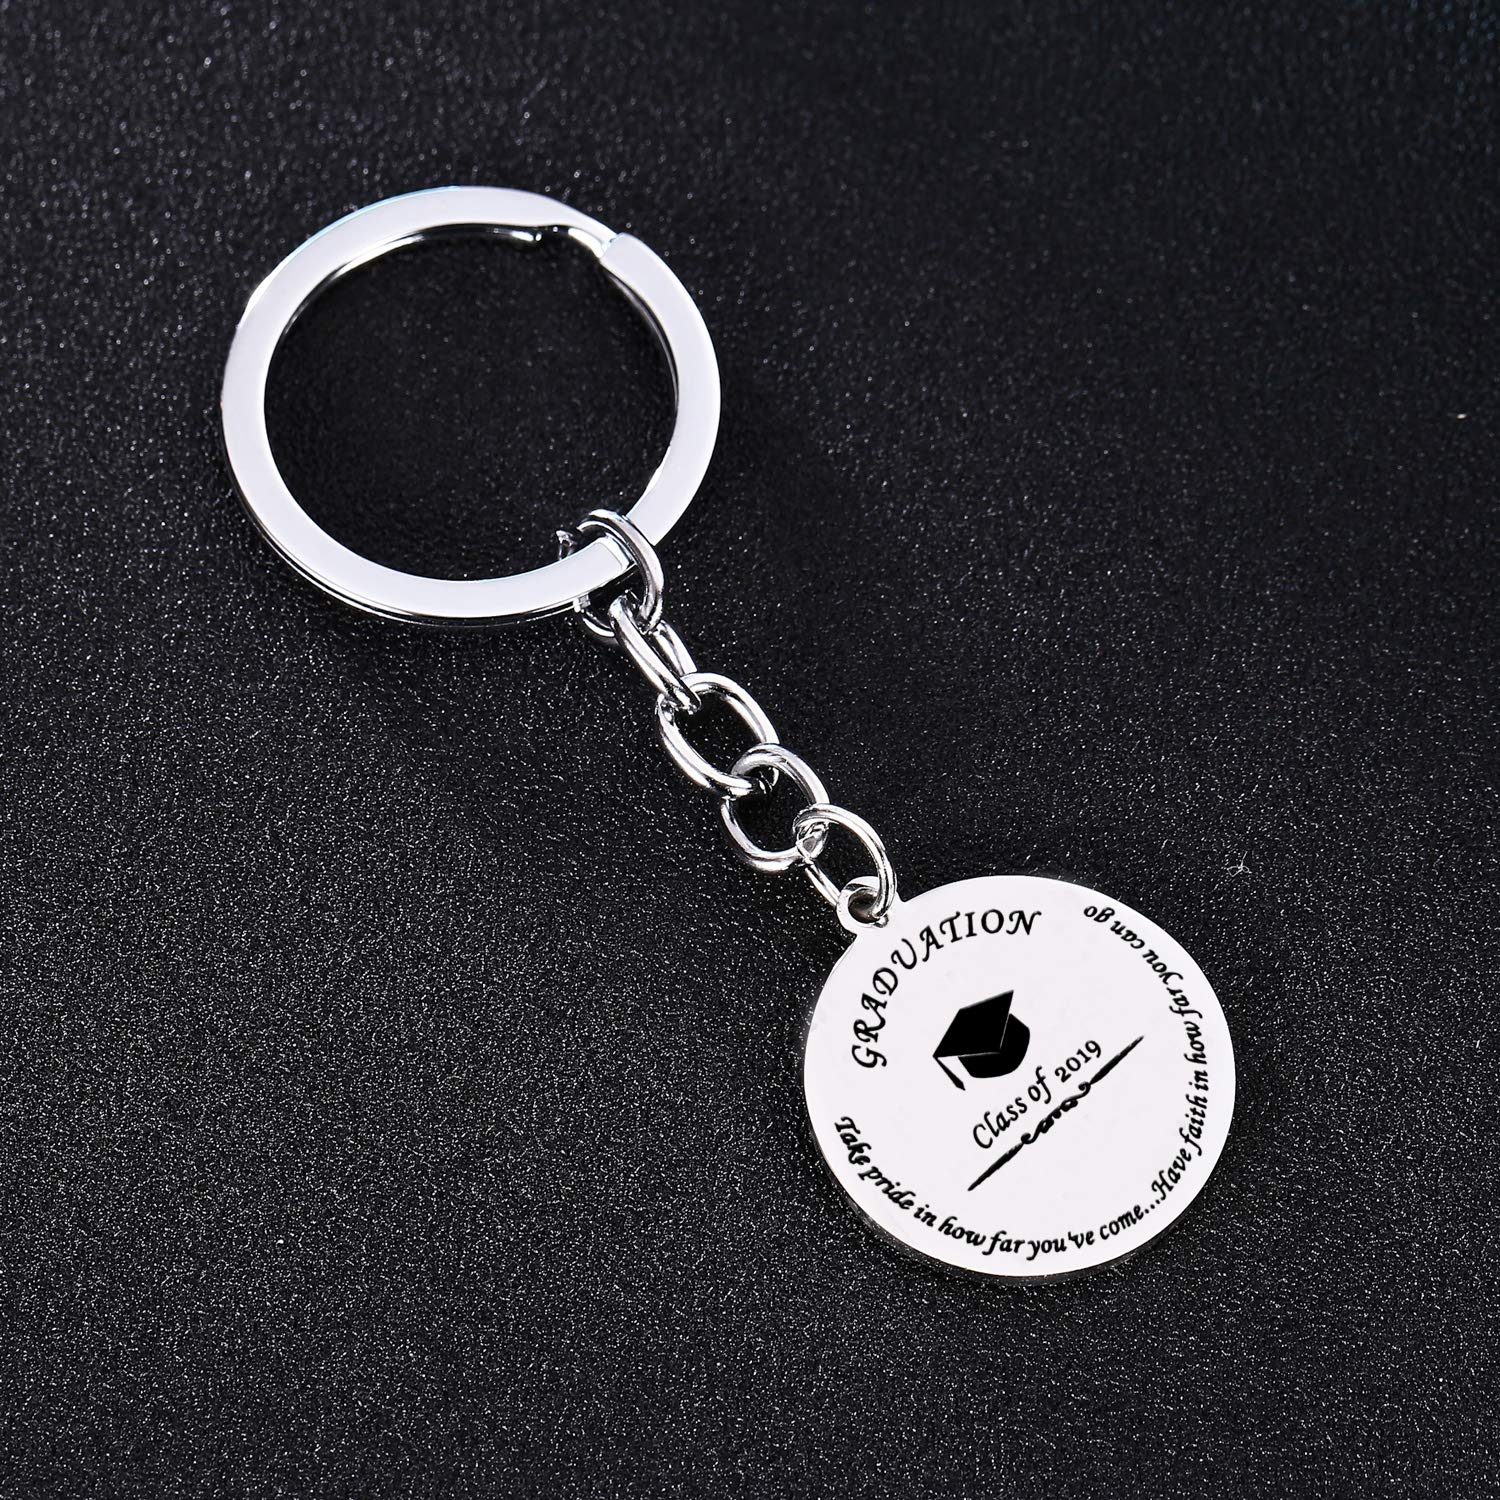 2019 BESPMOSP Class of 2019 Graduation Inspiration Keychain Best Friend Take Pride in How Far Youve Come